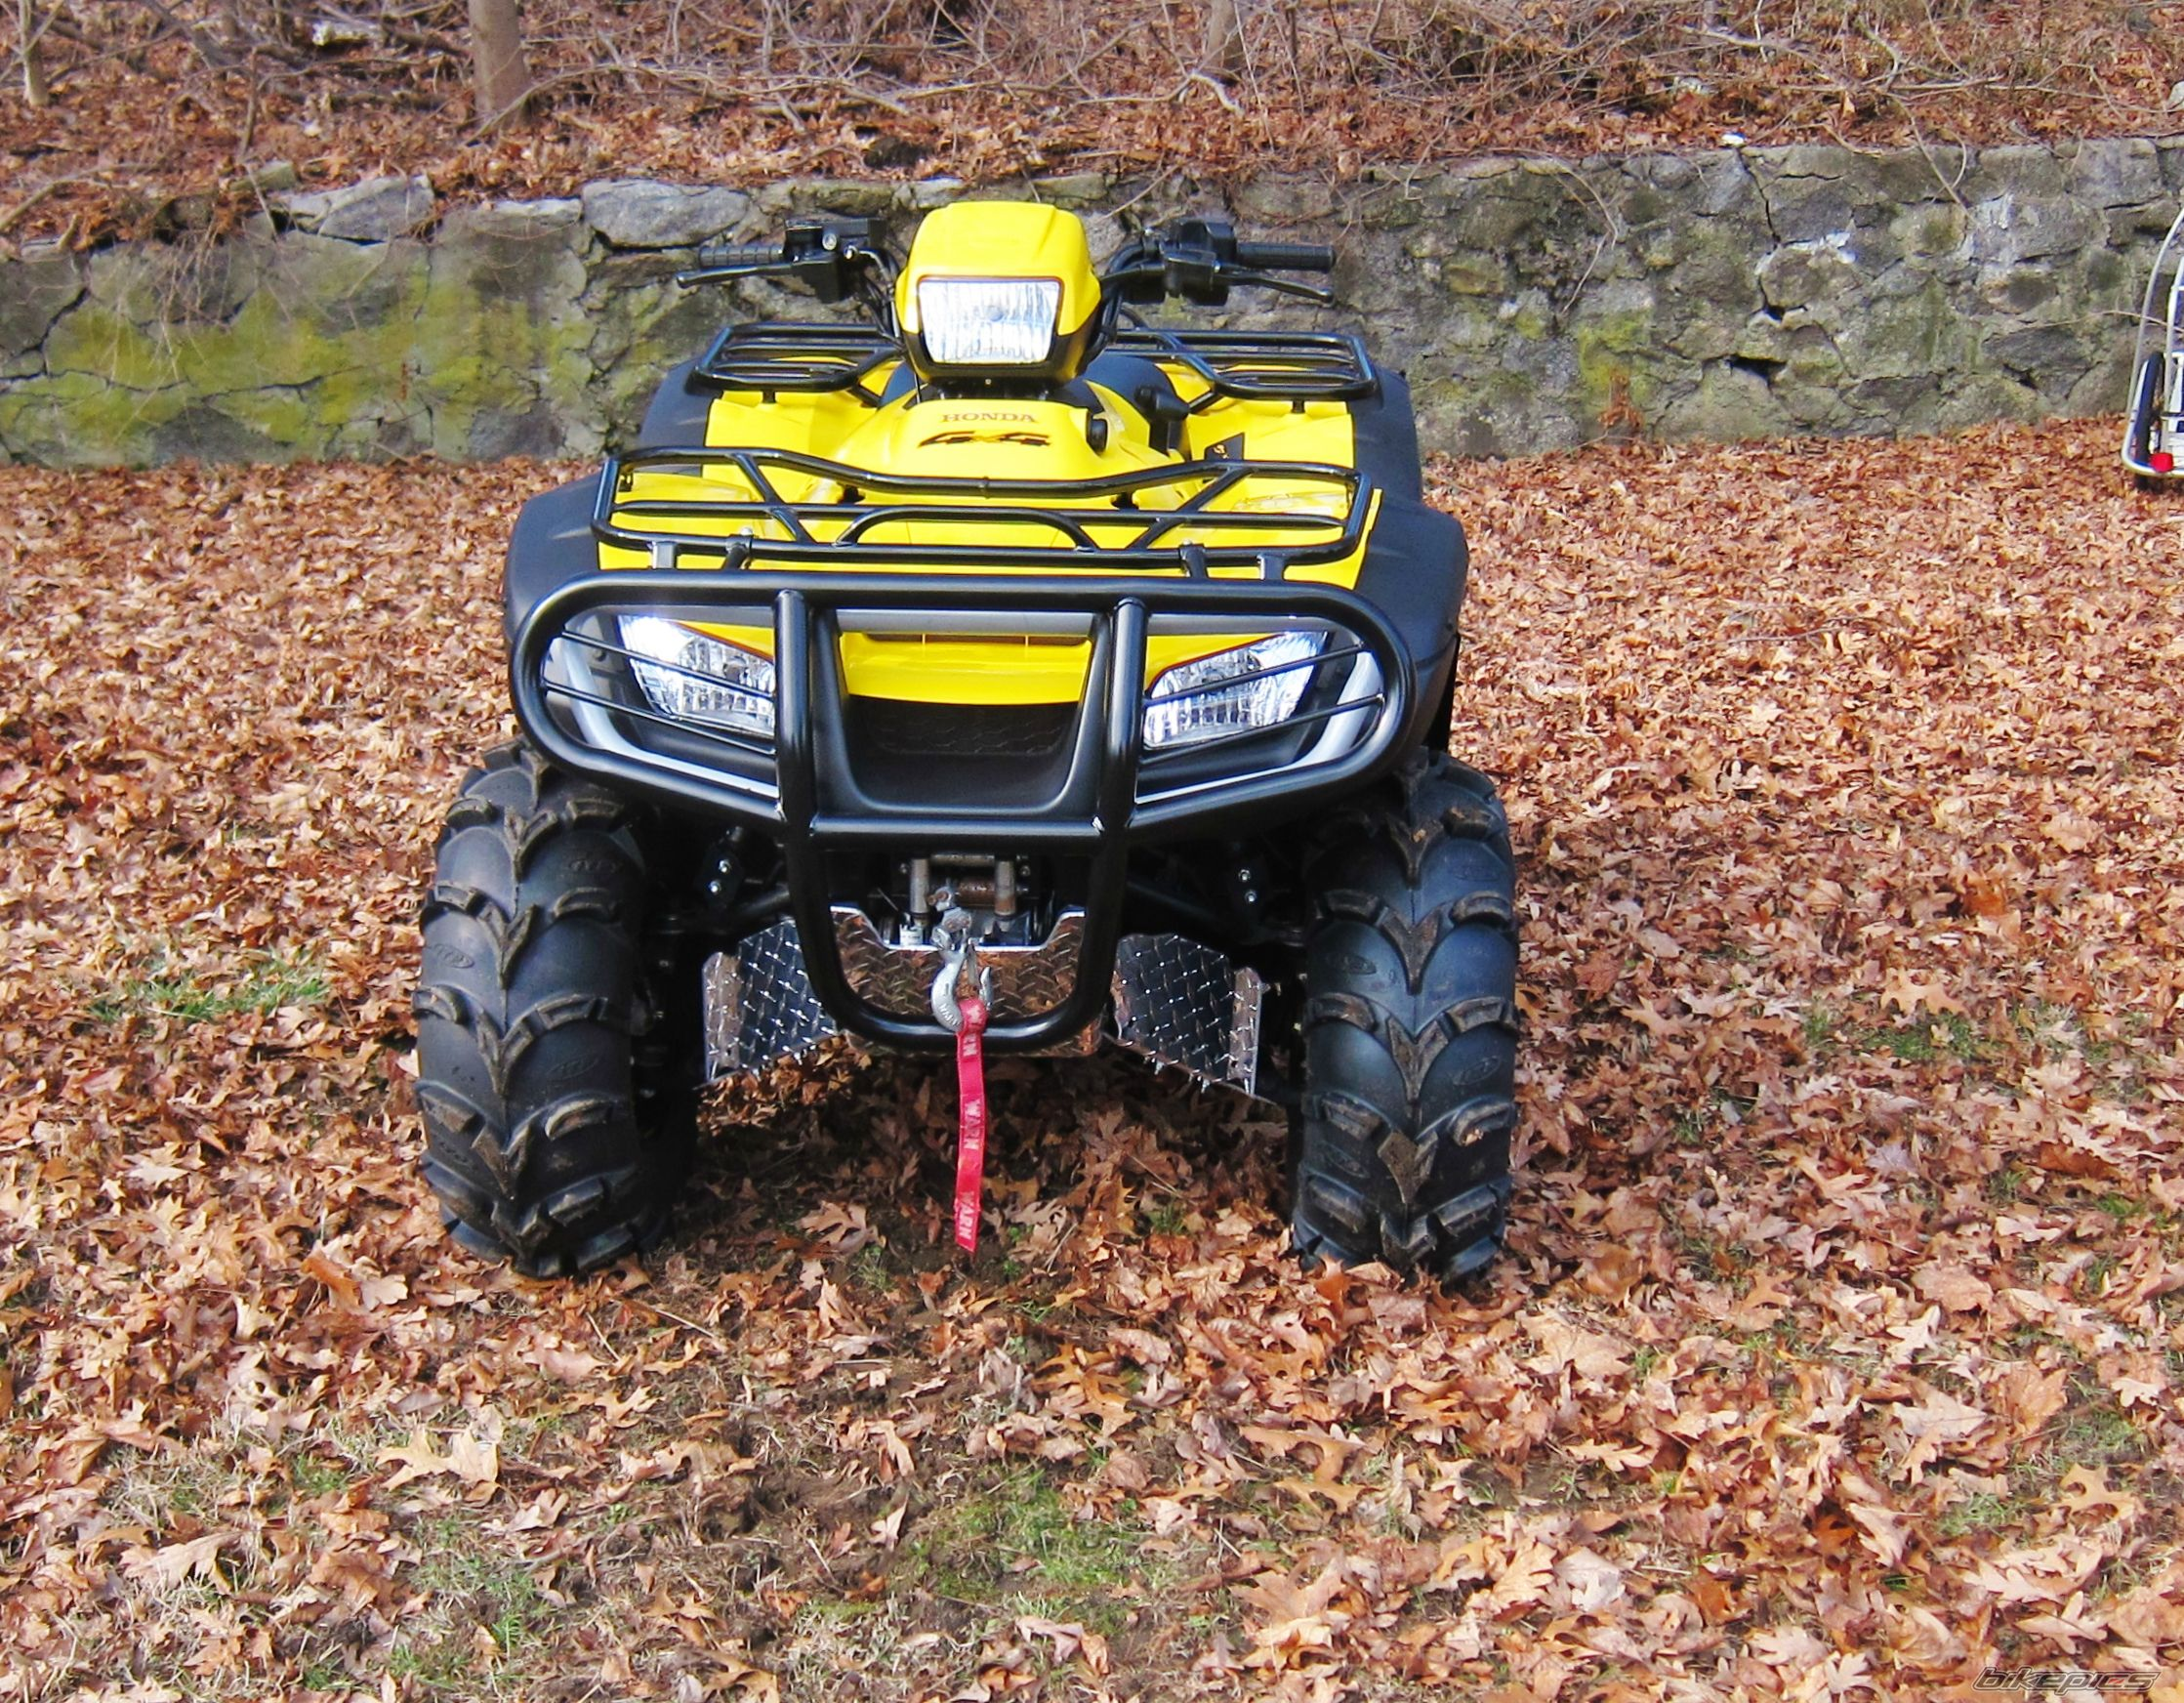 2006 HONDA FOURTRAX 500 FOREMAN | Picture 2340143 motorcycle photo